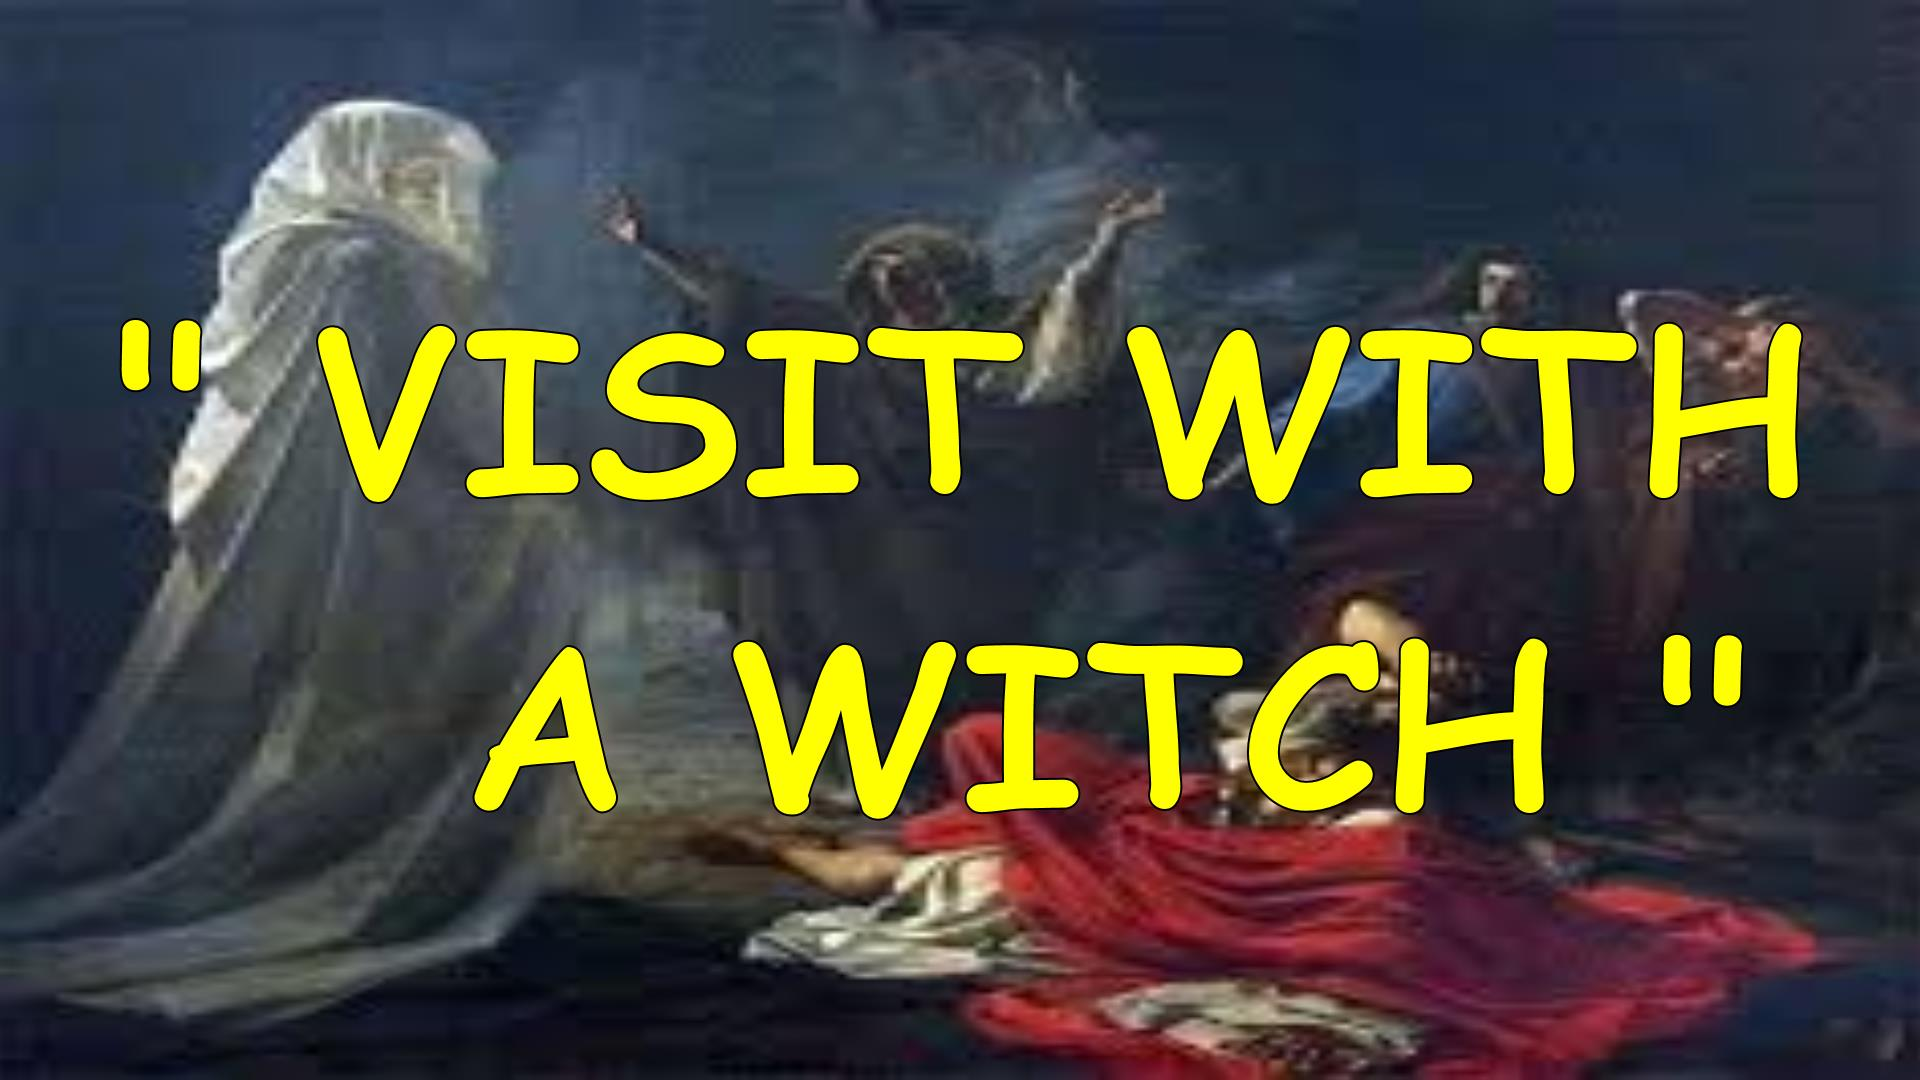 VISIT WITH A WITCH